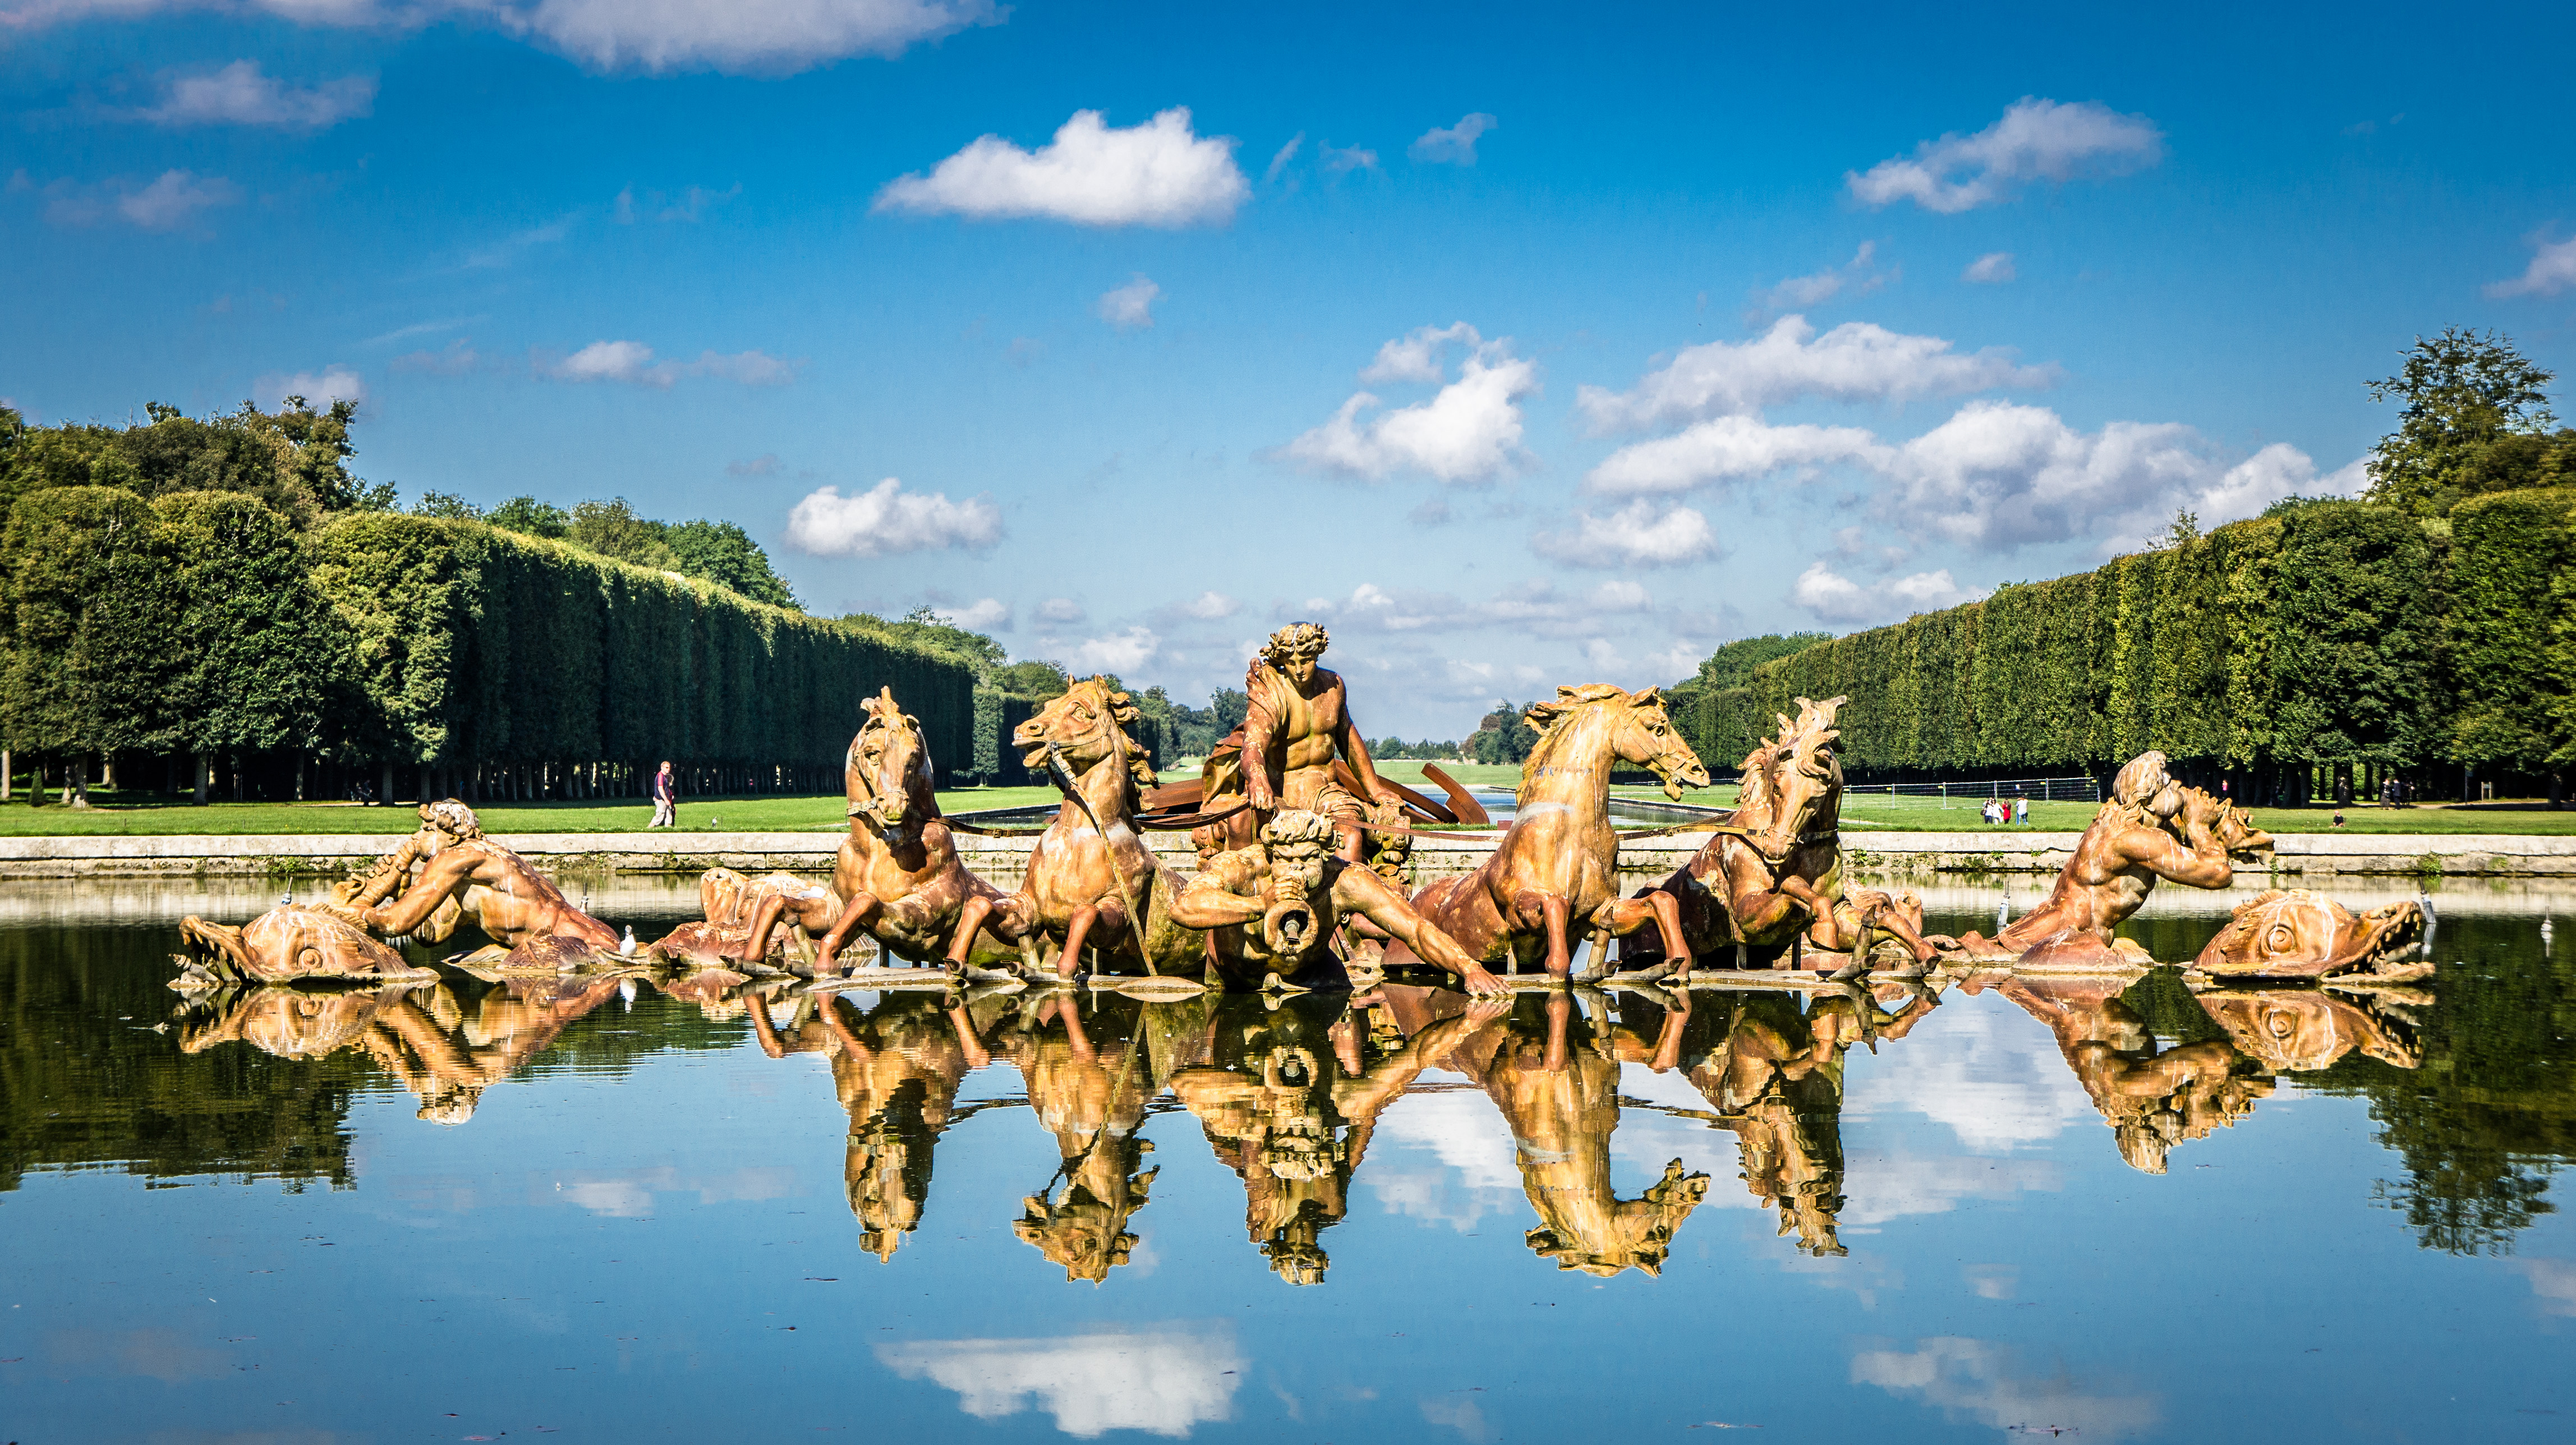 File:Magnificent fountains at Versailles Palace, 30 August 2011 ...